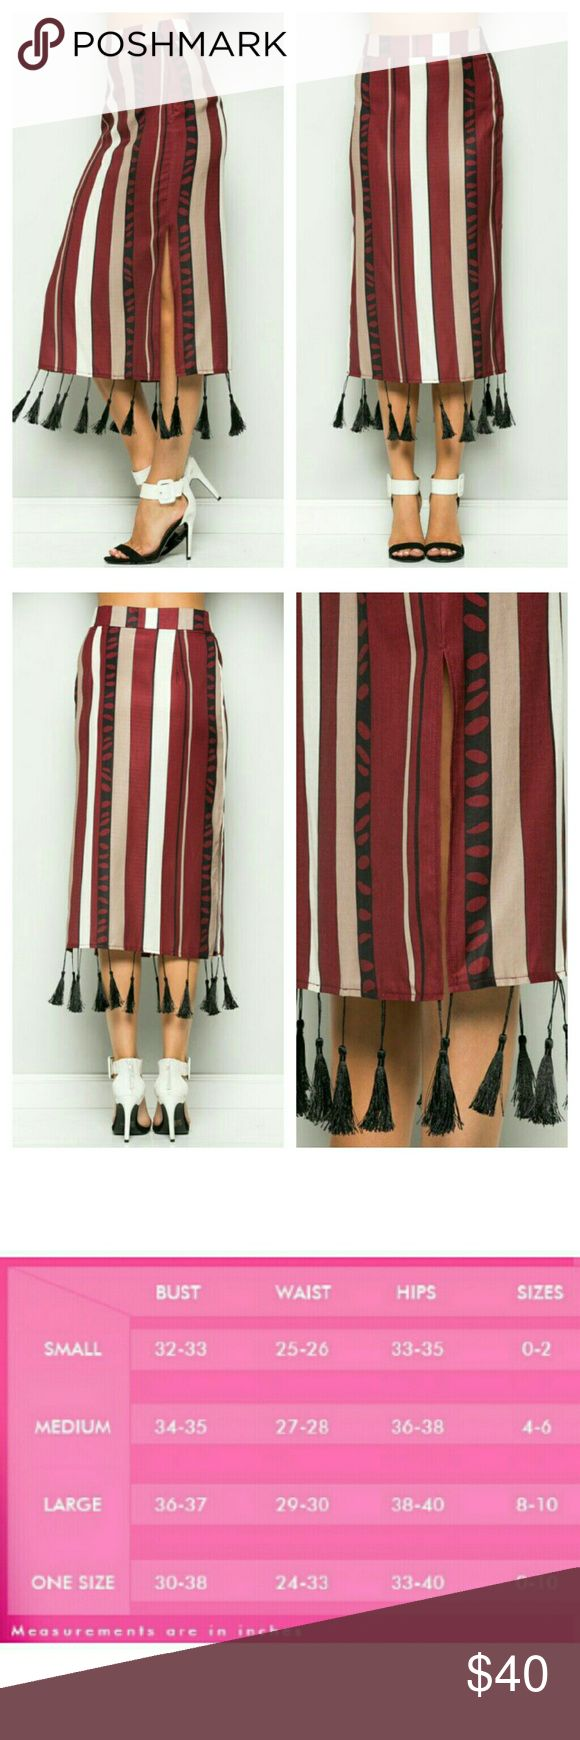 TASSEL BOTTOM STRIPE SKIRT Absolutely one-of-a-kind, this TASSEL BOTTOM STRIPE SKIRT looks like one your granny owned. Featuring burgundy/white/ black stripes, a sexy Midi-Length, a modest side split, and a zippered side. This skirt is lovingly  made out of 100% polyester and is a relaxed fit. FabFormula  Skirts Midi